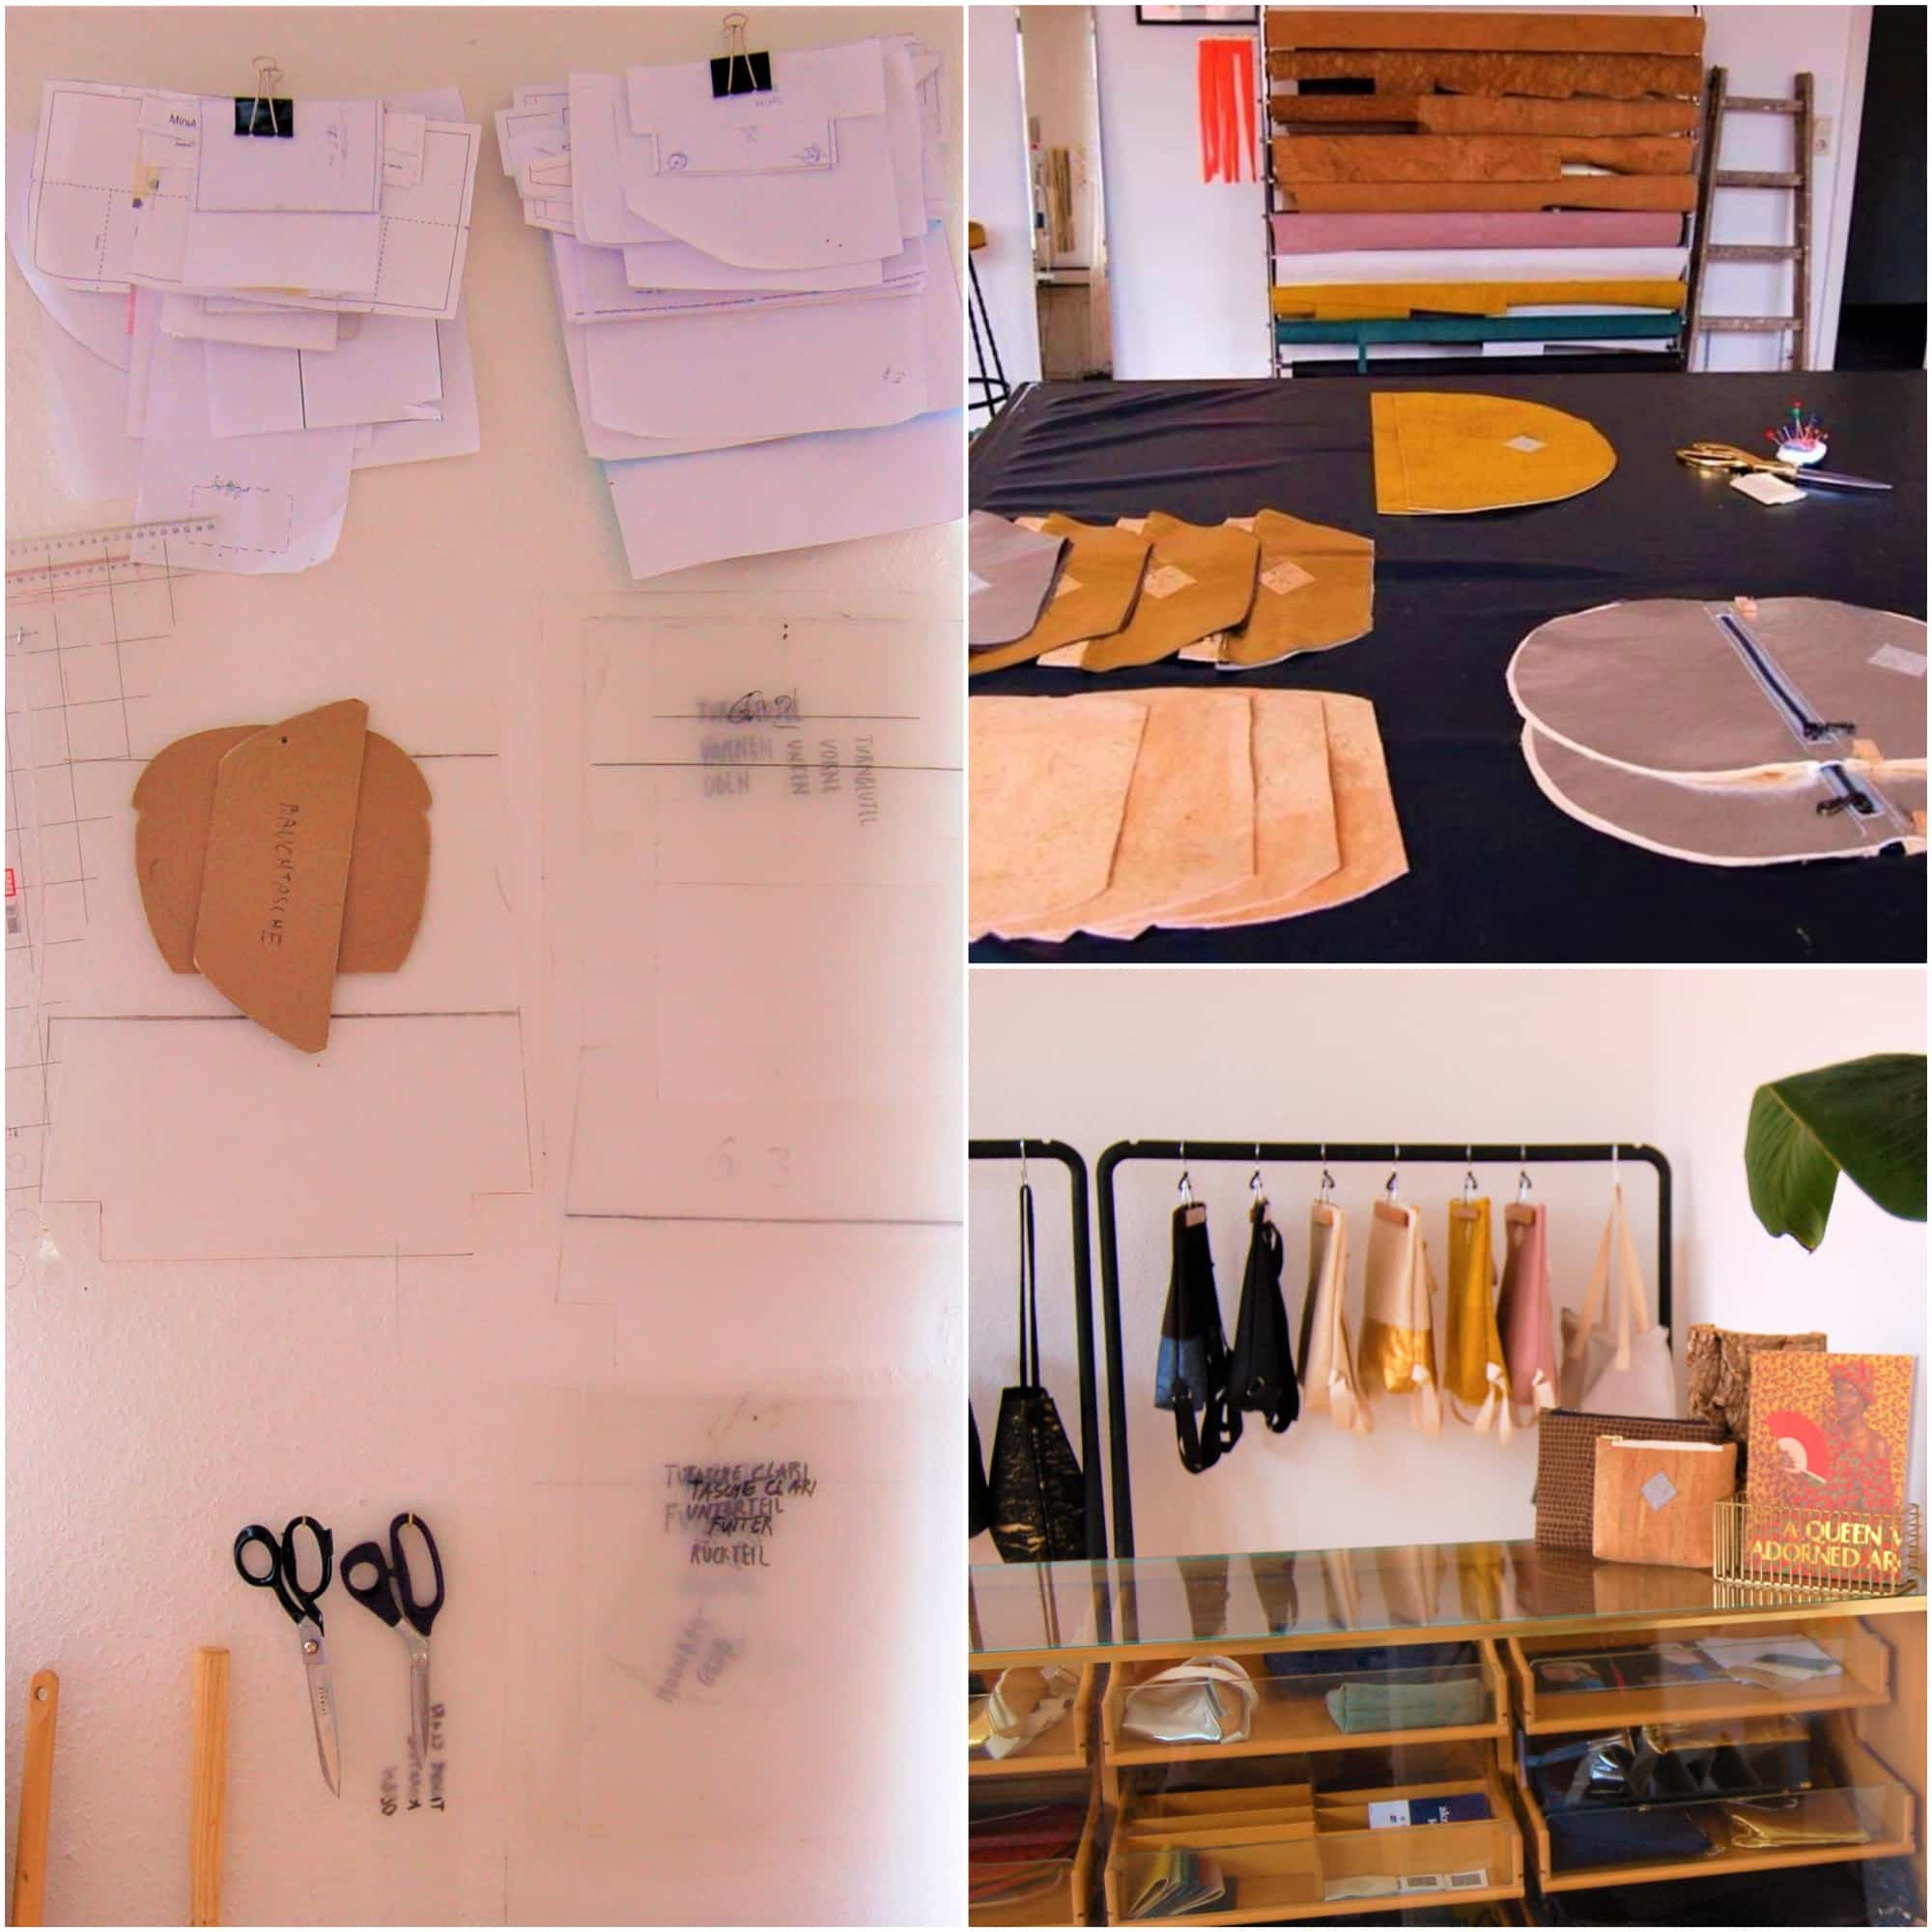 Style Hannover Herdentier Collage - Herdentier - vegane Accessoires